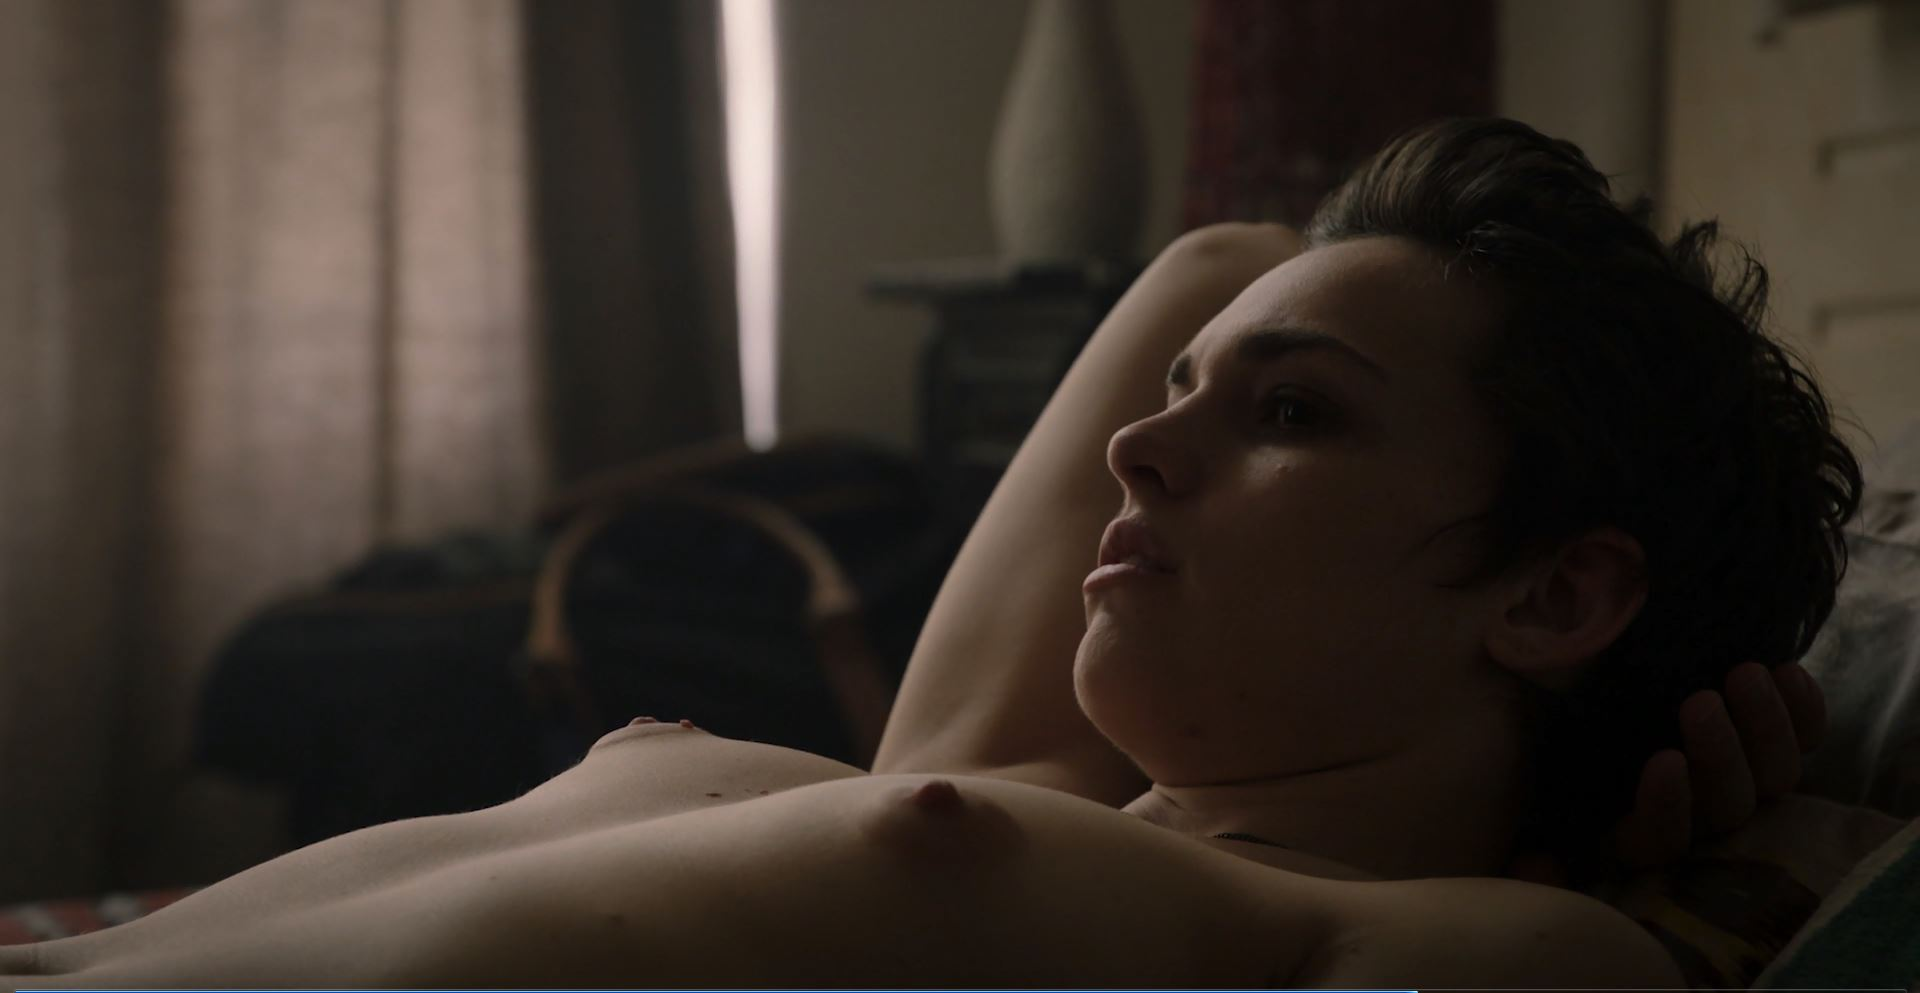 Sara Serraiocco nude as Baldwin in Counterpart